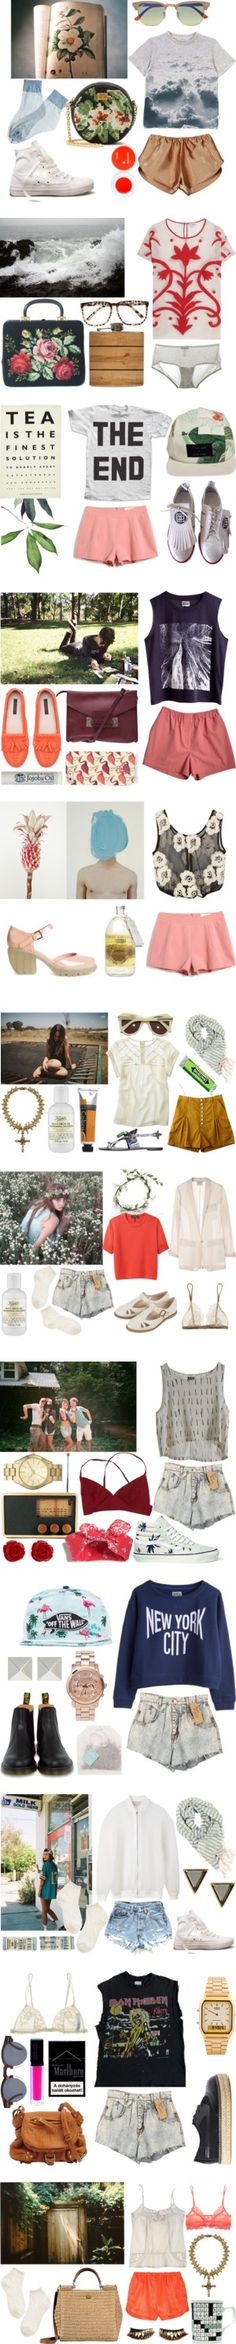 """""""You look great in shorts"""" by kelly-m-o on Polyvore"""